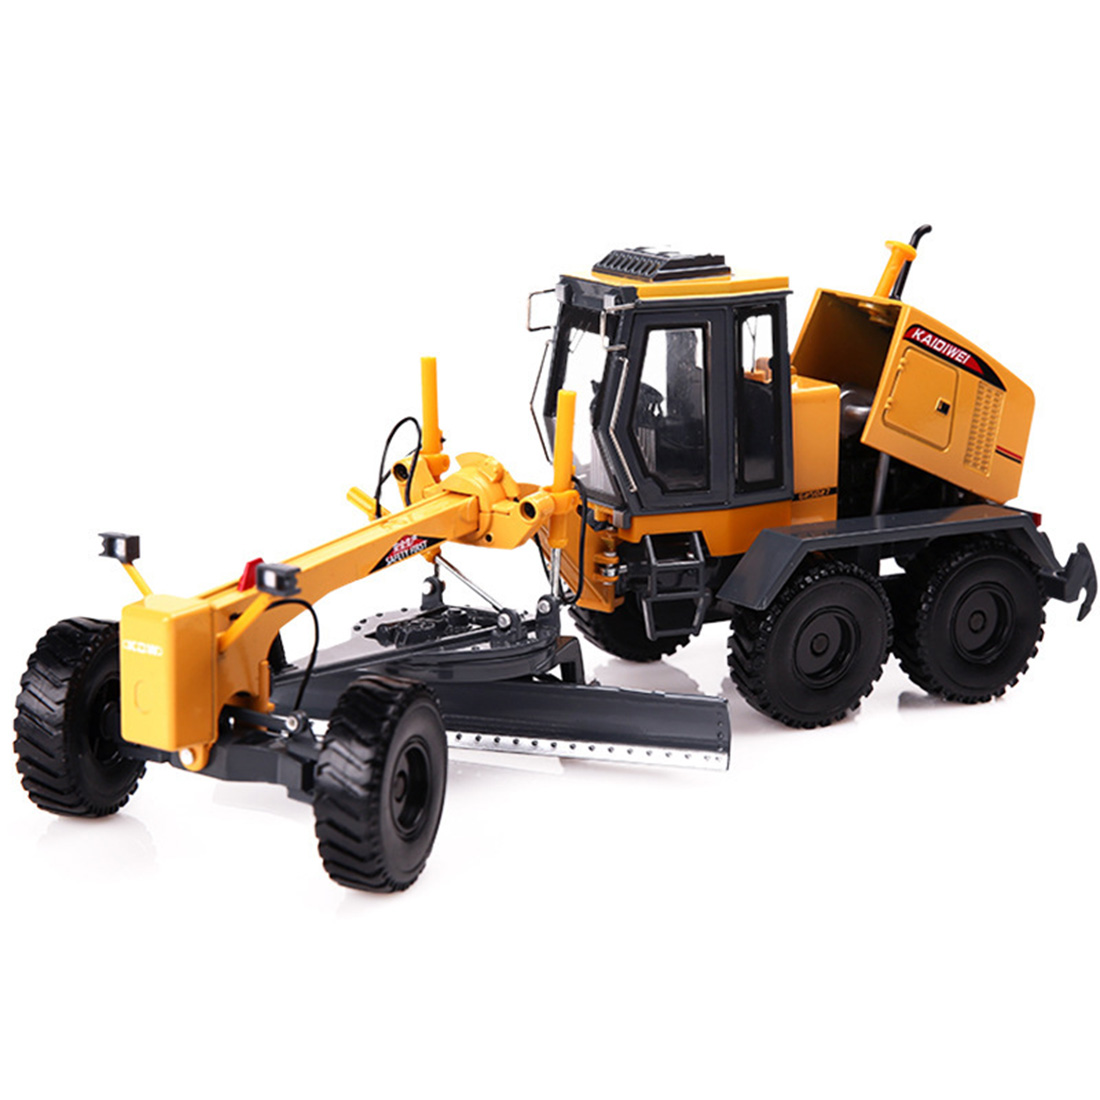 1:35 Alloy Engineering Vehicle <font><b>Model</b></font> Simulation Truck Grader Toy <font><b>Model</b></font> <font><b>Building</b></font> <font><b>Kits</b></font> - Yellow image